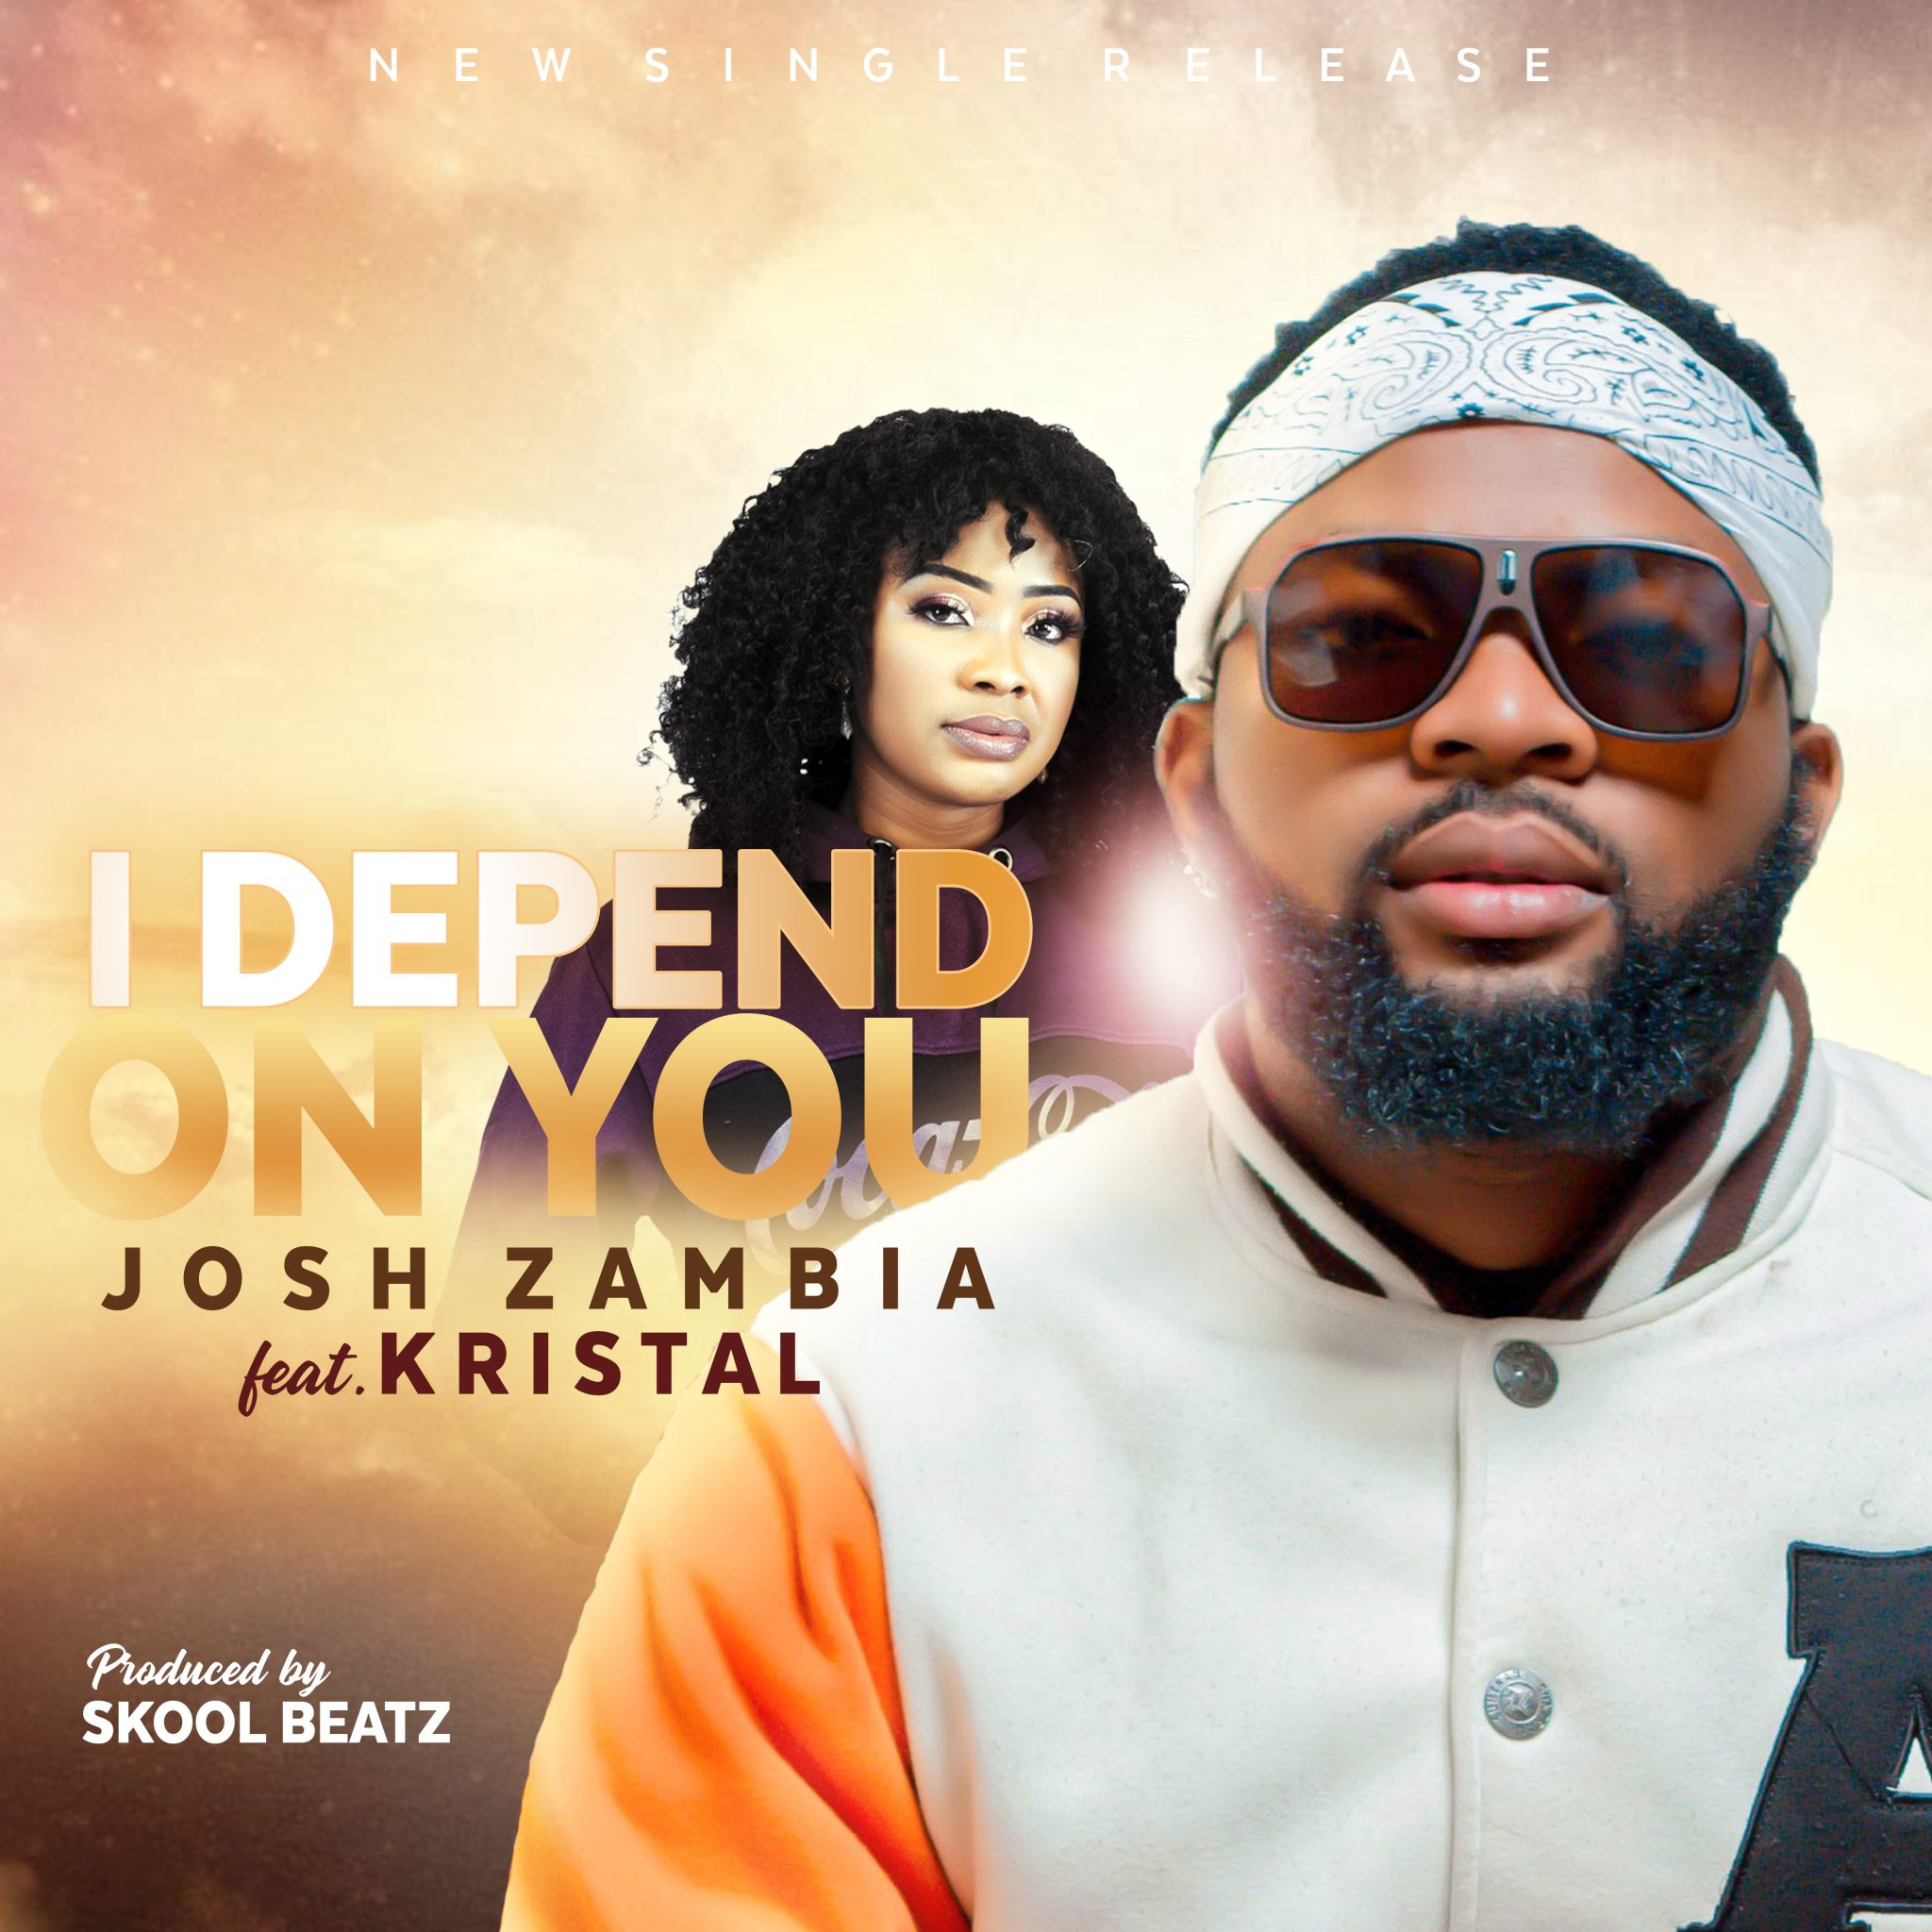 Download Mp3 Josh Zambia ft. Kristal - I Depend on You